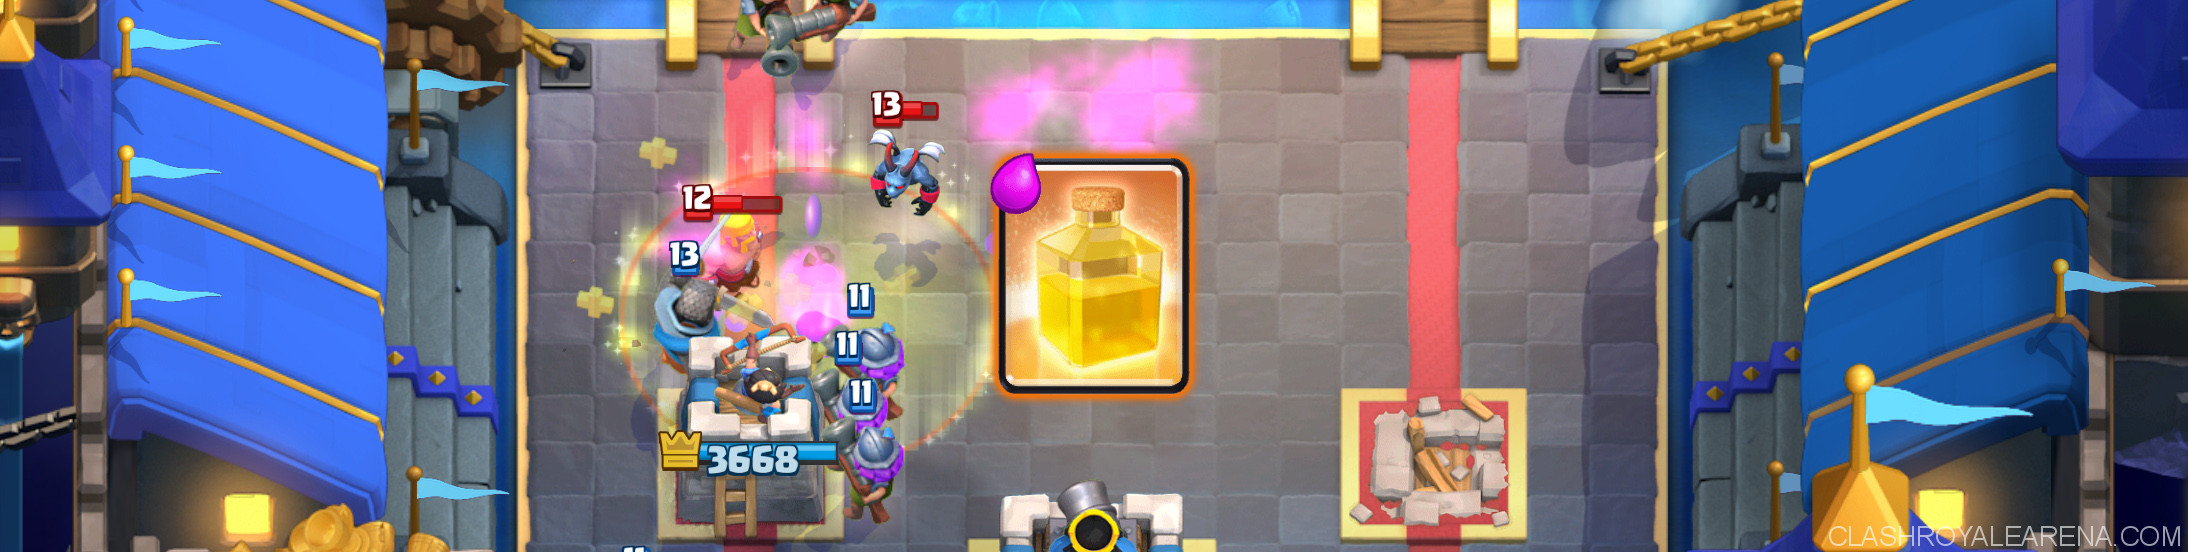 clash royale heal